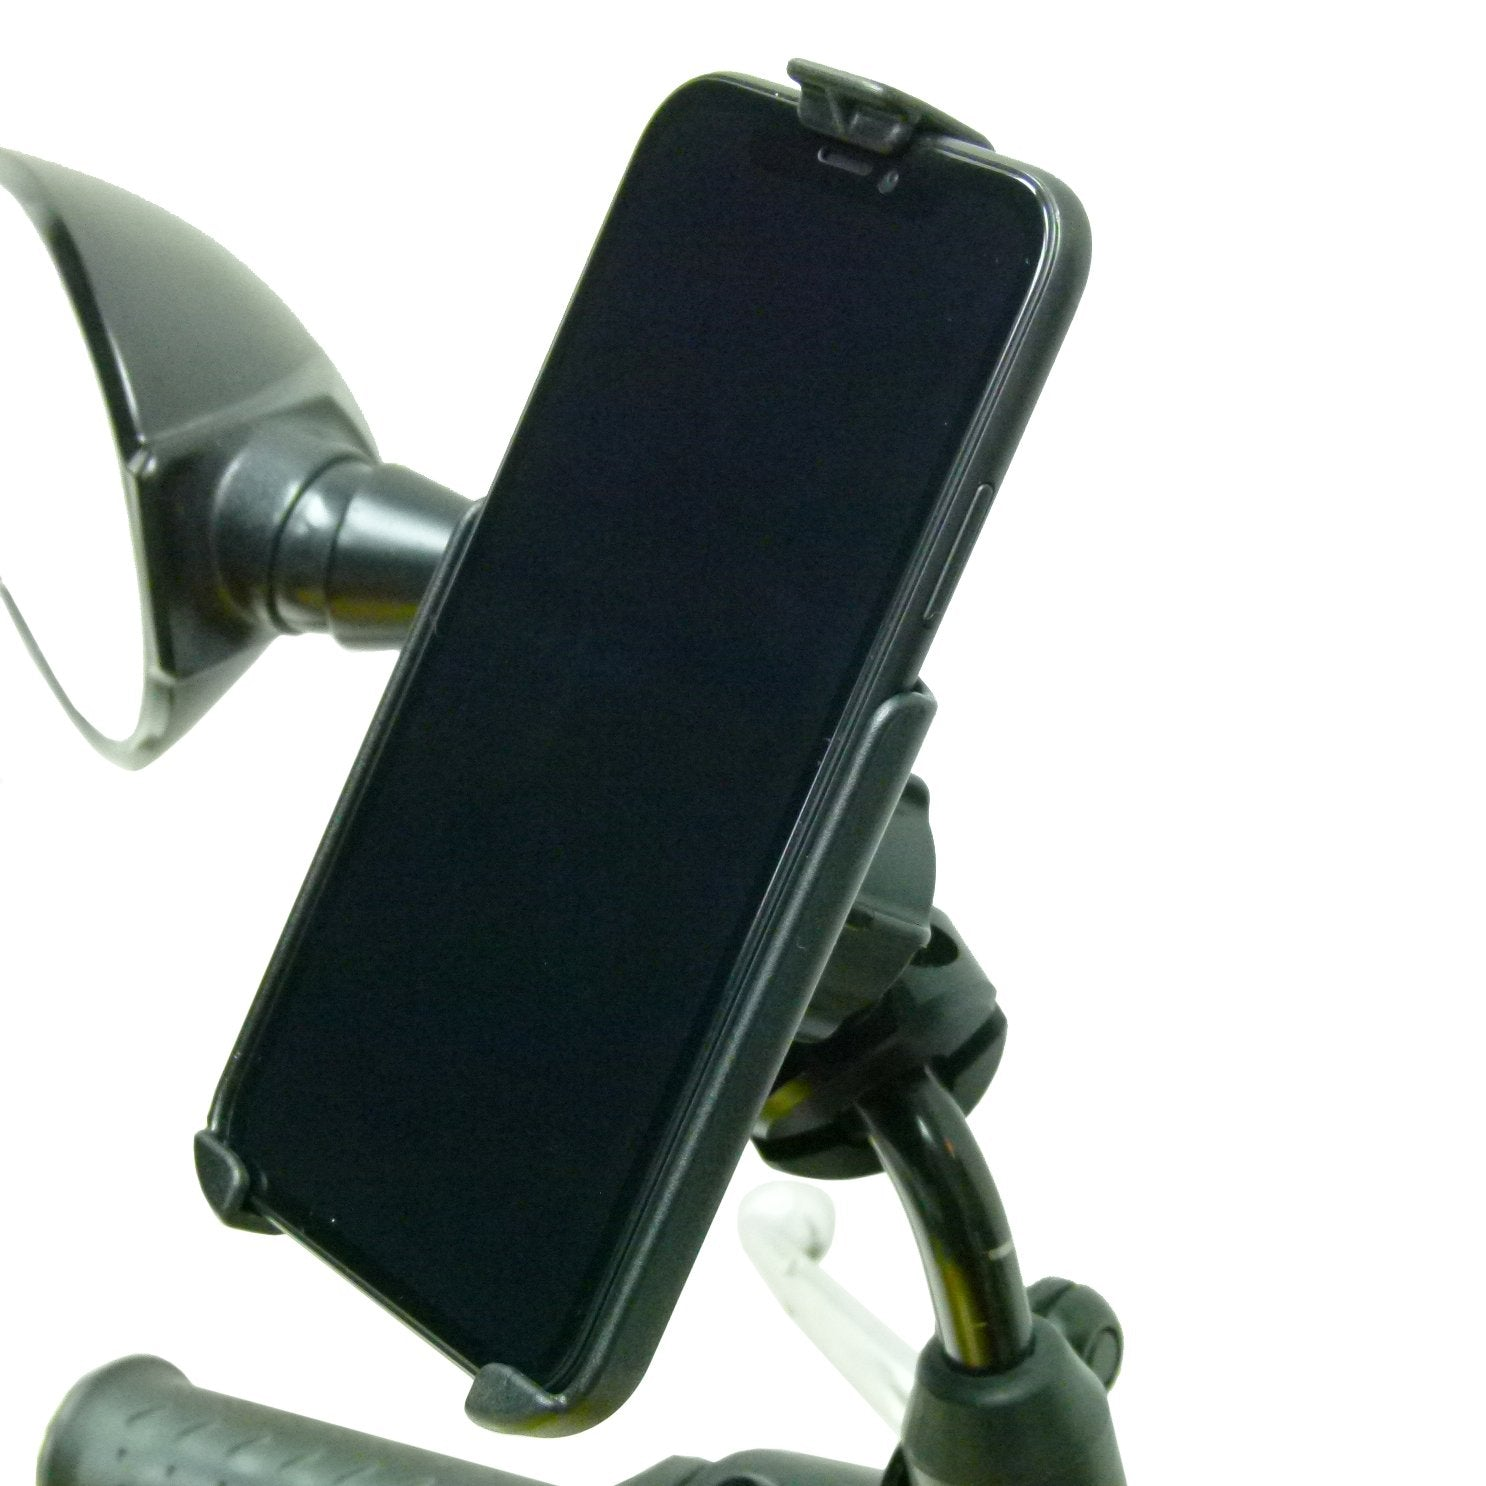 Motorcycle - Scooter Mirror Mount with Dedicated RAM Holder for iPhone 7 (sku 50462) - BuyBits Ltd UK